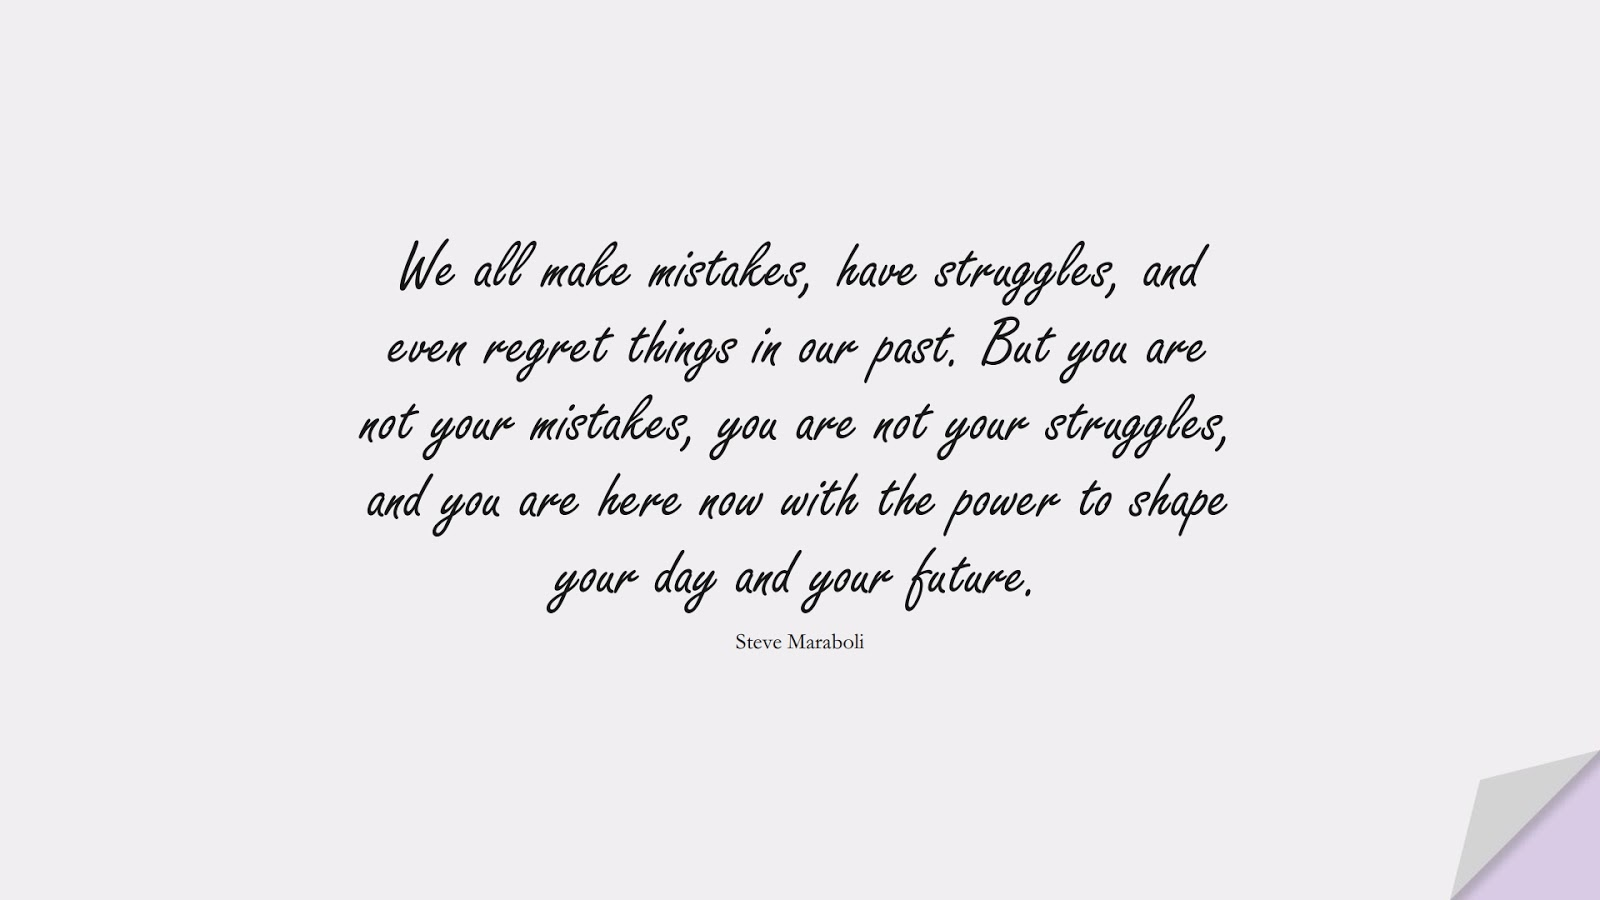 We all make mistakes, have struggles, and even regret things in our past. But you are not your mistakes, you are not your struggles, and you are here now with the power to shape your day and your future. (Steve Maraboli);  #MotivationalQuotes